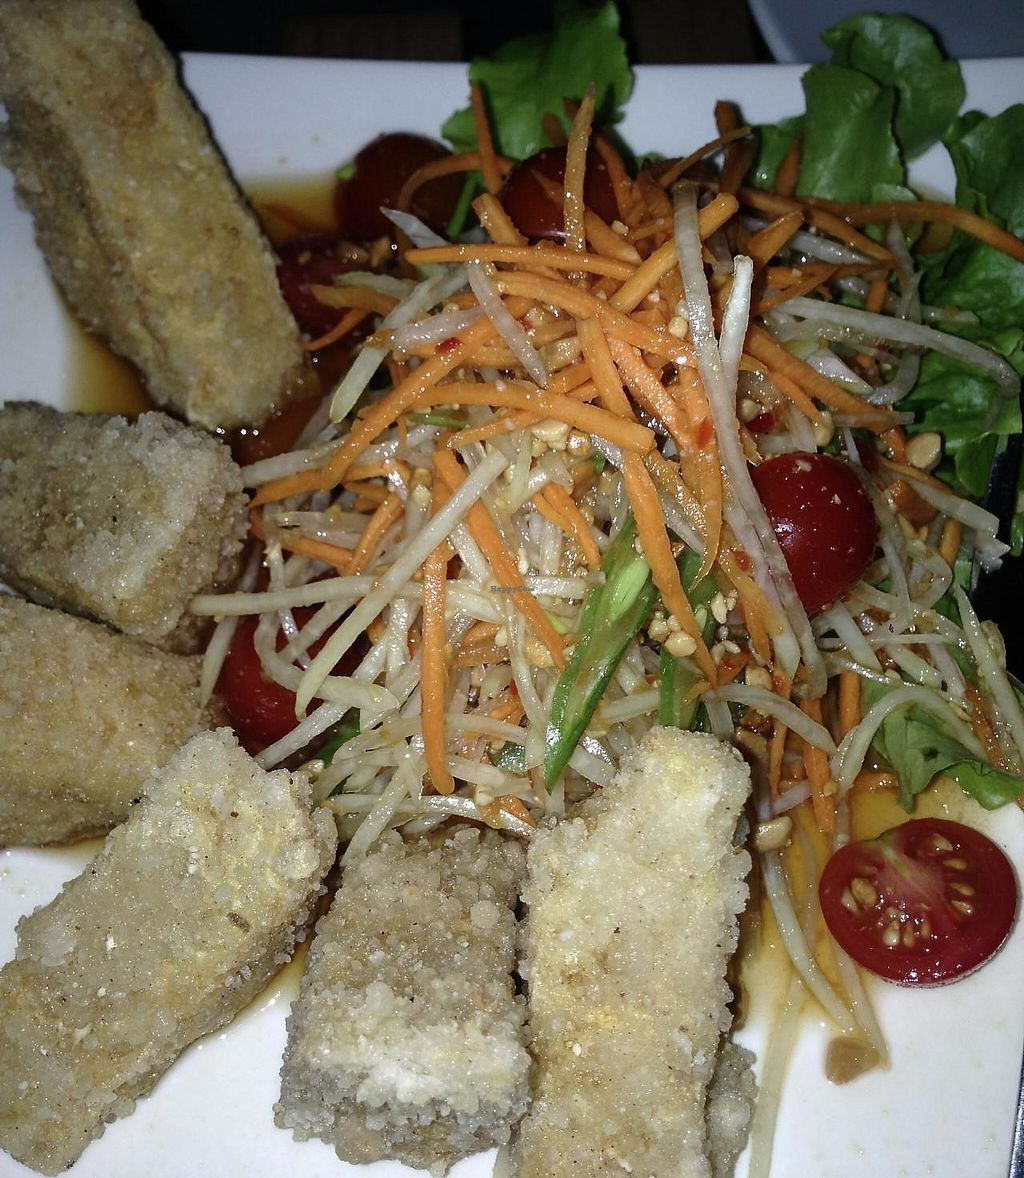 """Photo of Yulli's  by <a href=""""/members/profile/chantea"""">chantea</a> <br/>Salt and Pepper Tofu <br/> April 26, 2014  - <a href='/contact/abuse/image/16153/248641'>Report</a>"""